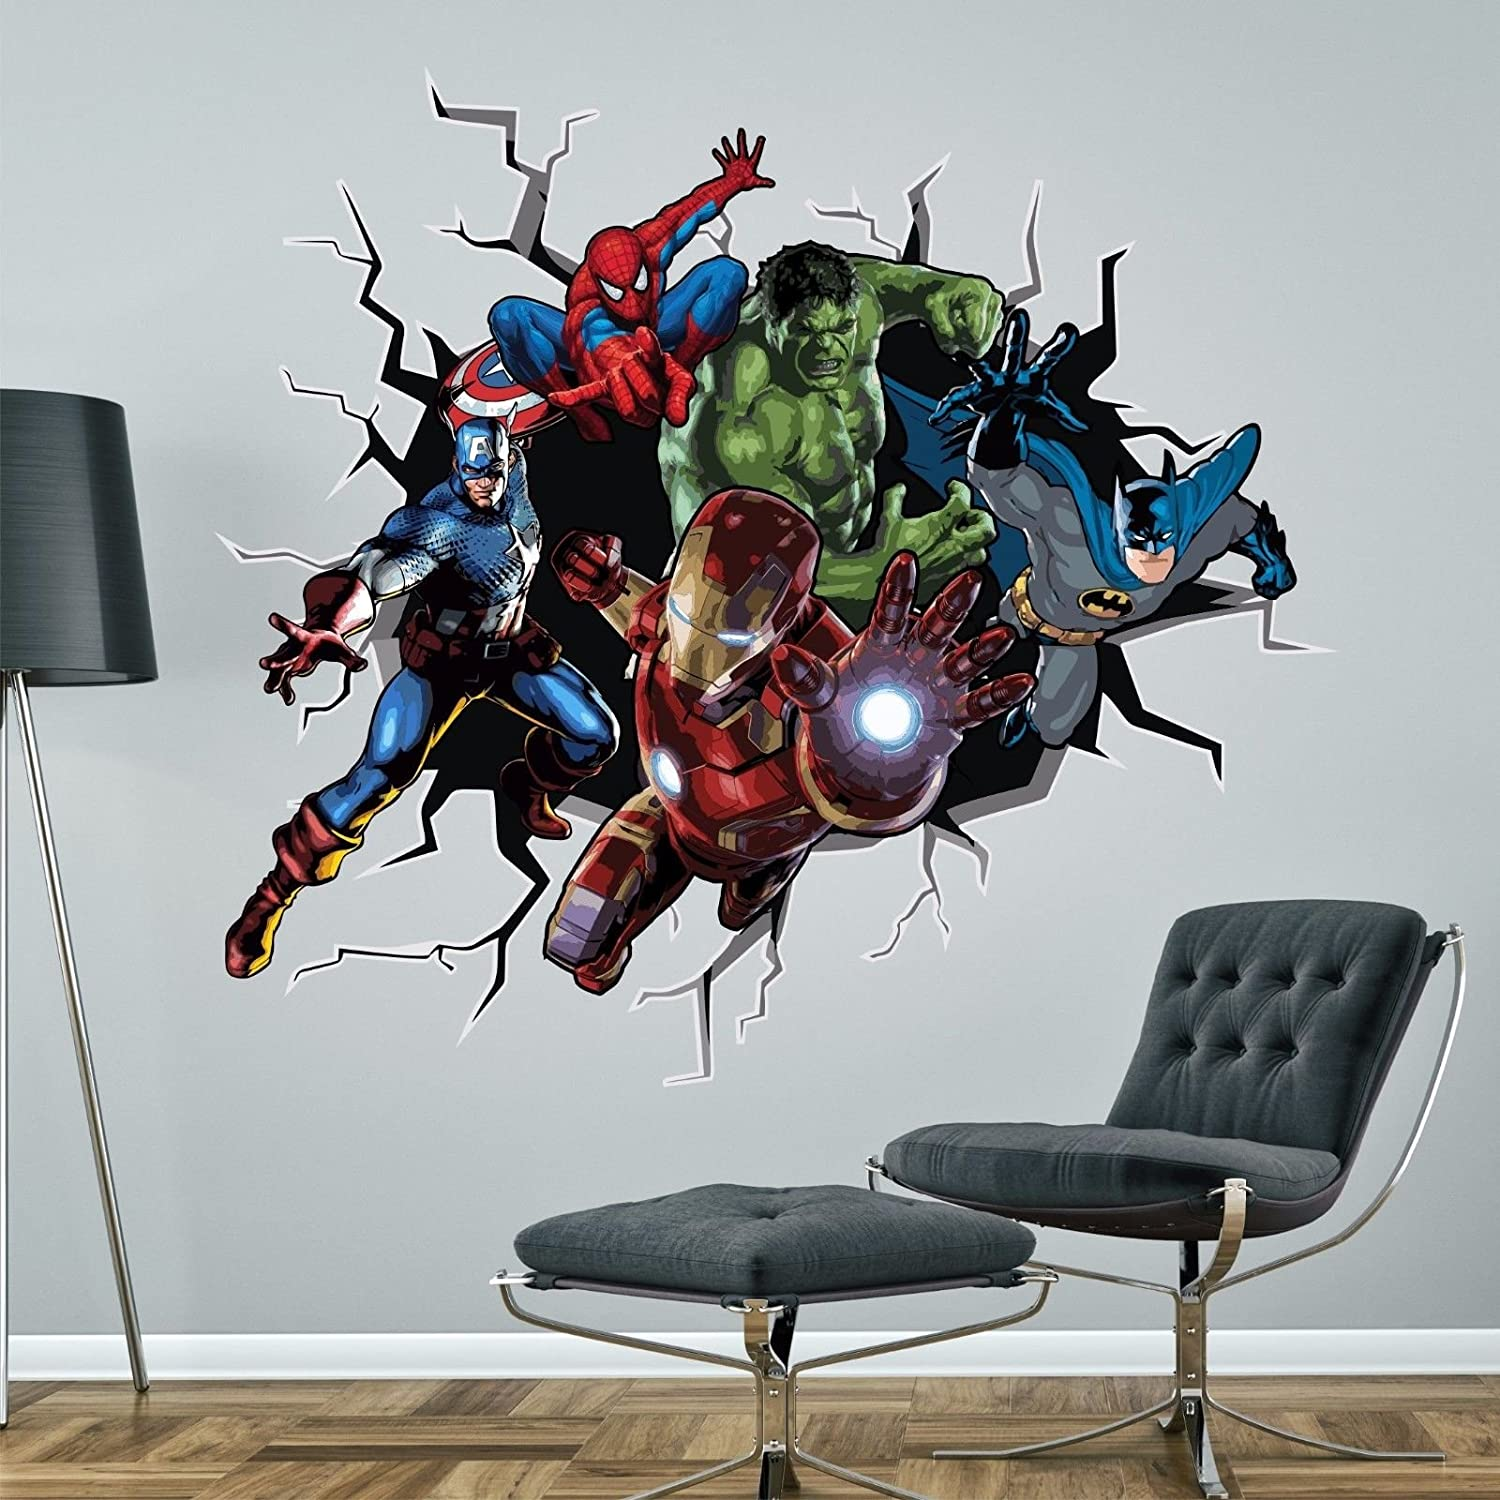 Superheroes Breaking Through Wall Sticker BATMAN HULK SPIDERMAN CAPTAIN AMERICA IRONMAN MARVEL Decal Mural (Medium - 91cm high x 100cm wide)